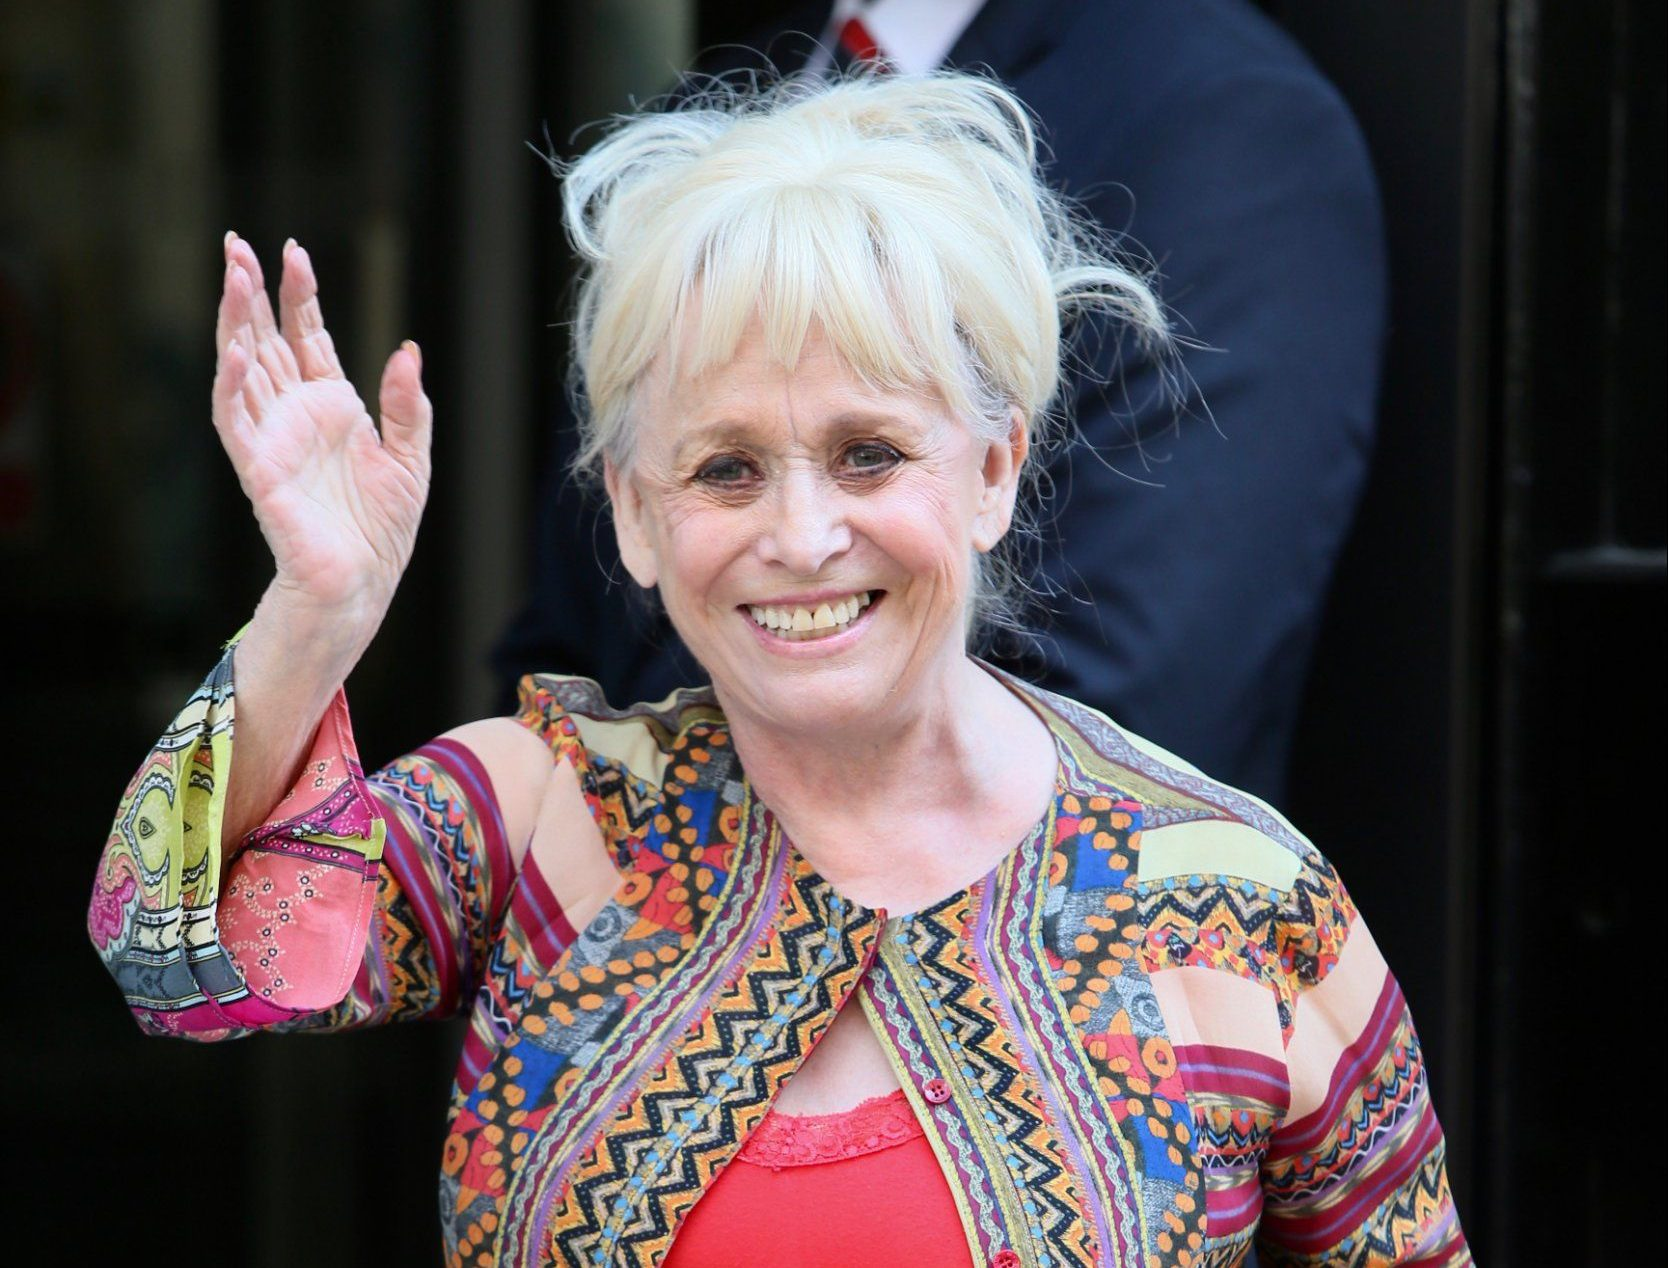 Former EastEnders star Barbara Windsor 'still has a laugh' and has 'some really good days' as she battles Alzheimer's disease